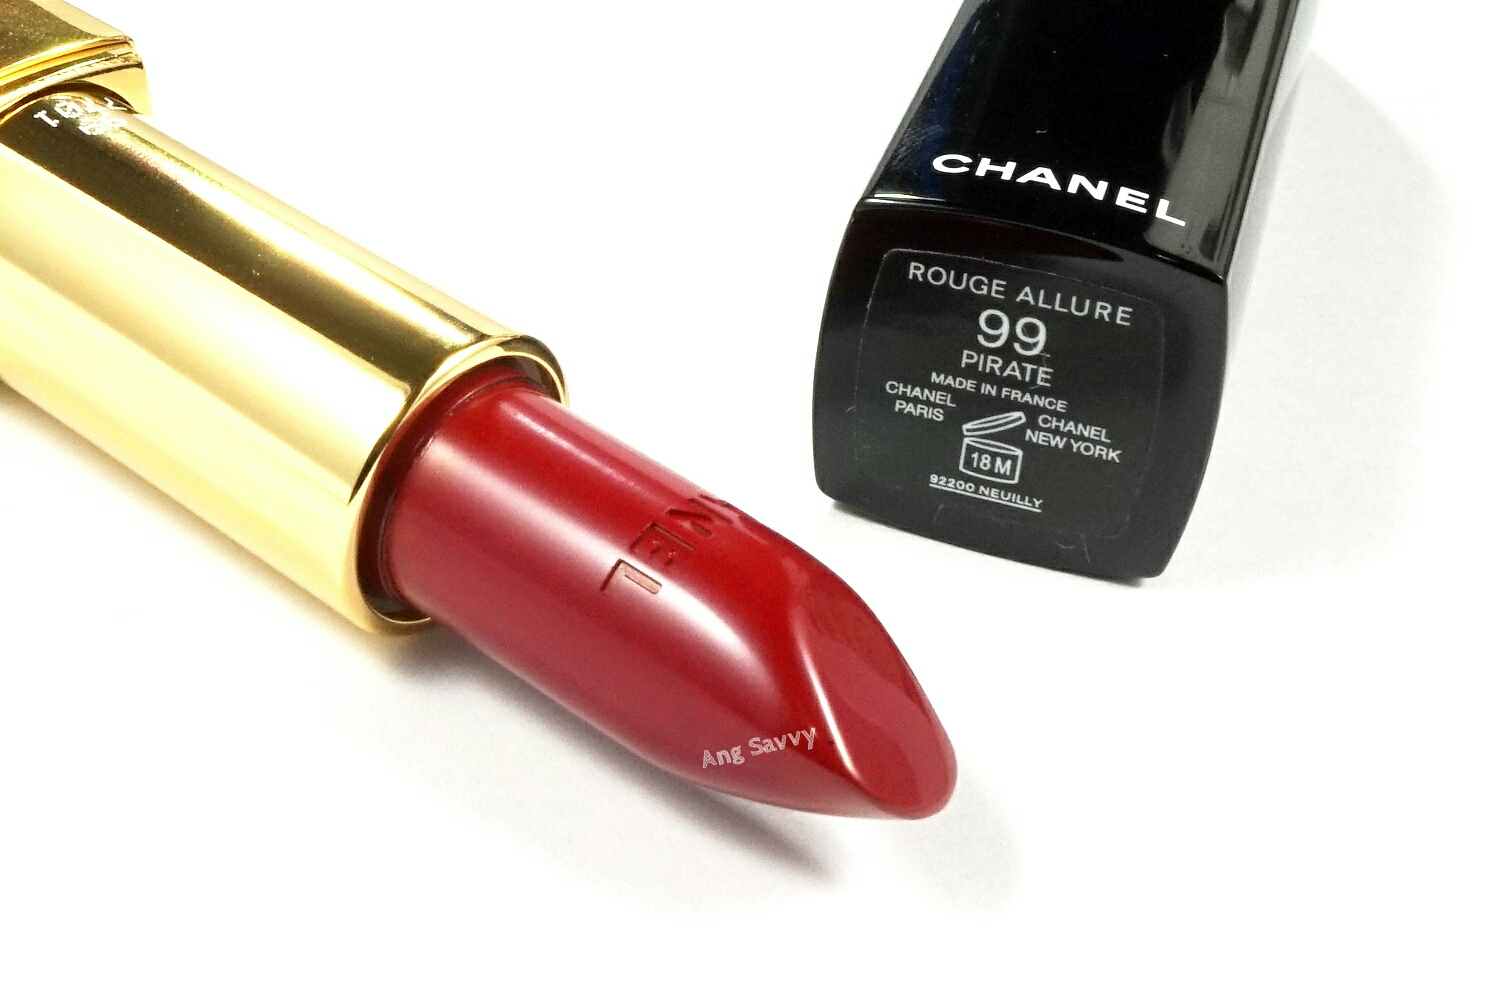 Rote Mascara Chanel Rouge Allure 99 Pirate Lipstick Ang Savvy